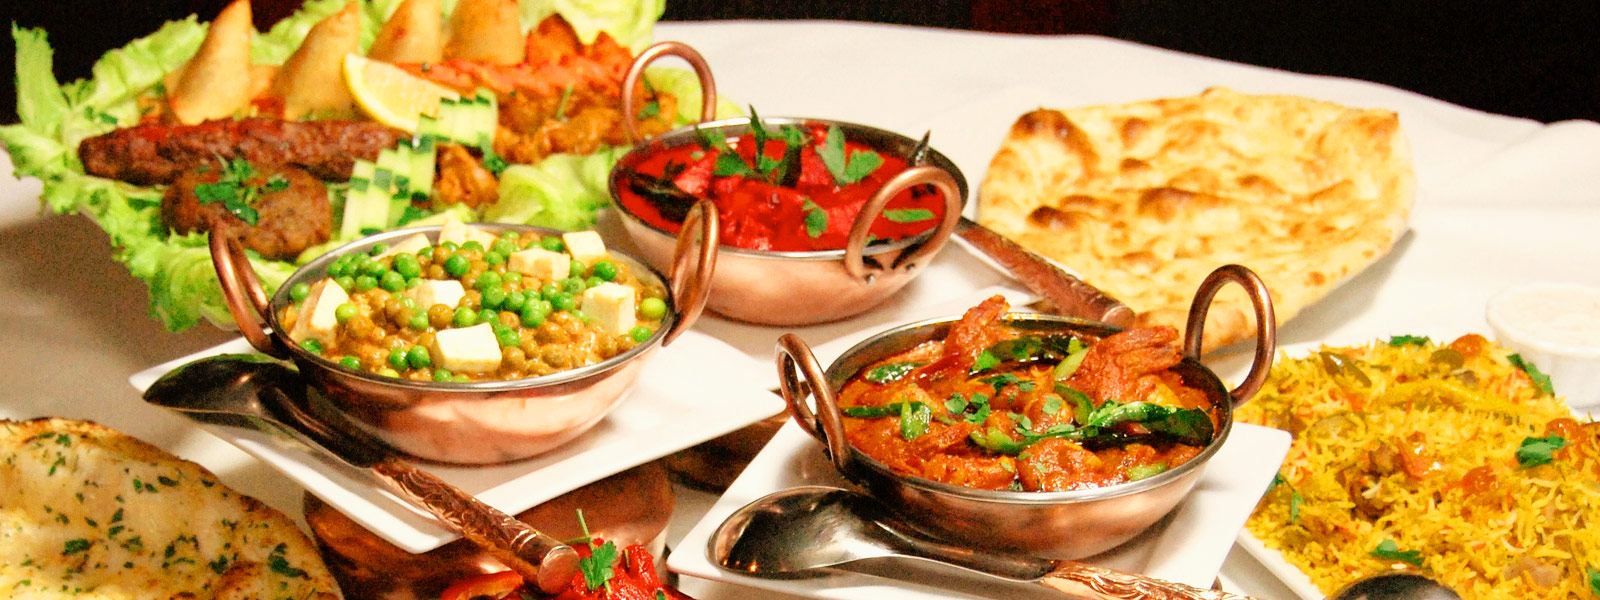 Indian wedding catering london asian food event catering london - Maharaja fine indian cuisine ...